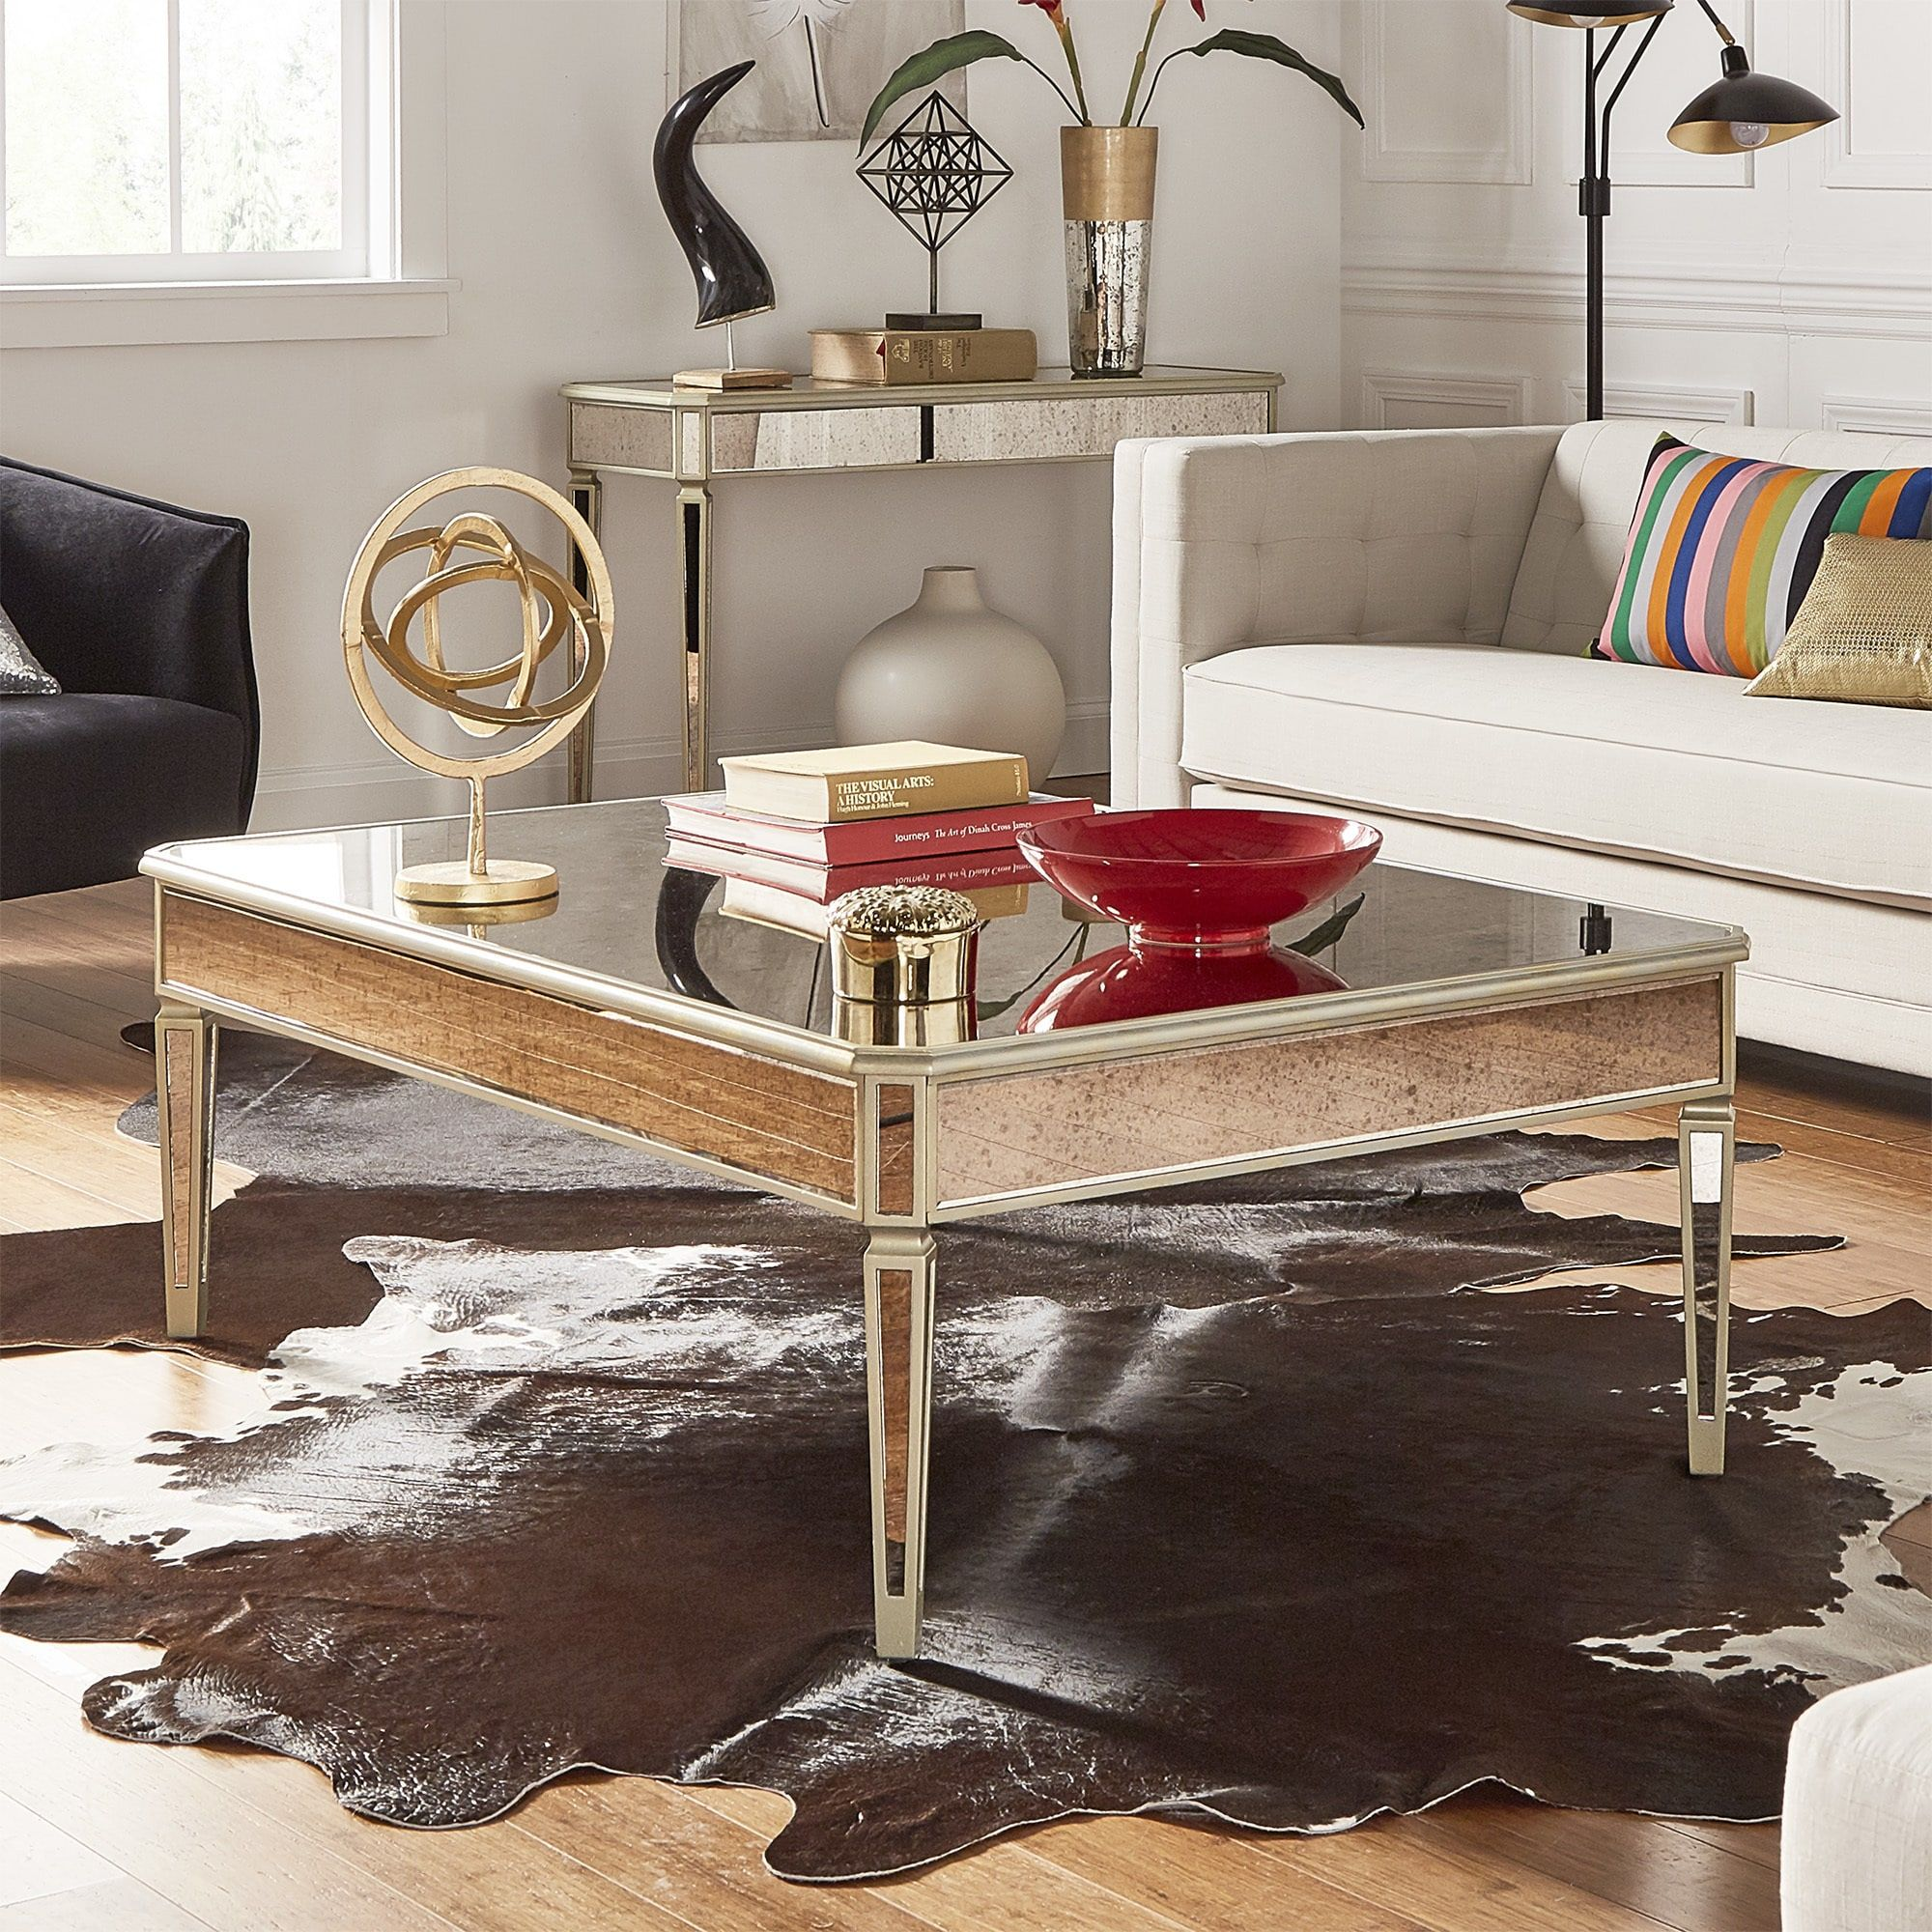 Clara antique gold mirrored accent tables by inspire q bold 2 piece set coffee table and end table